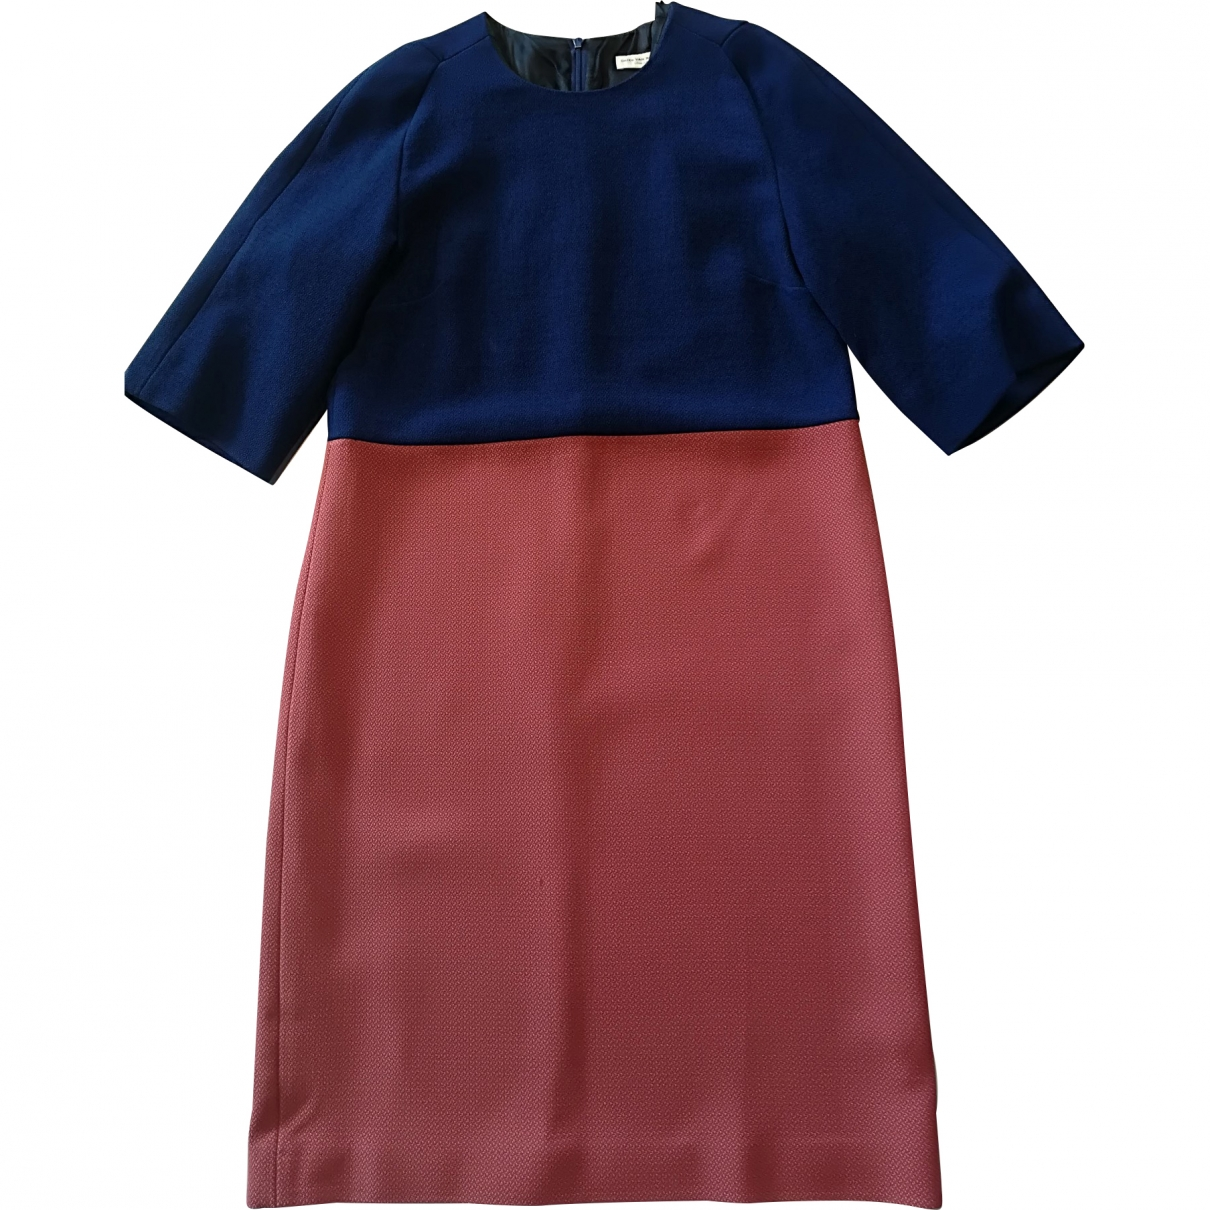 Dries Van Noten \N Multicolour Wool dress for Women 38 IT